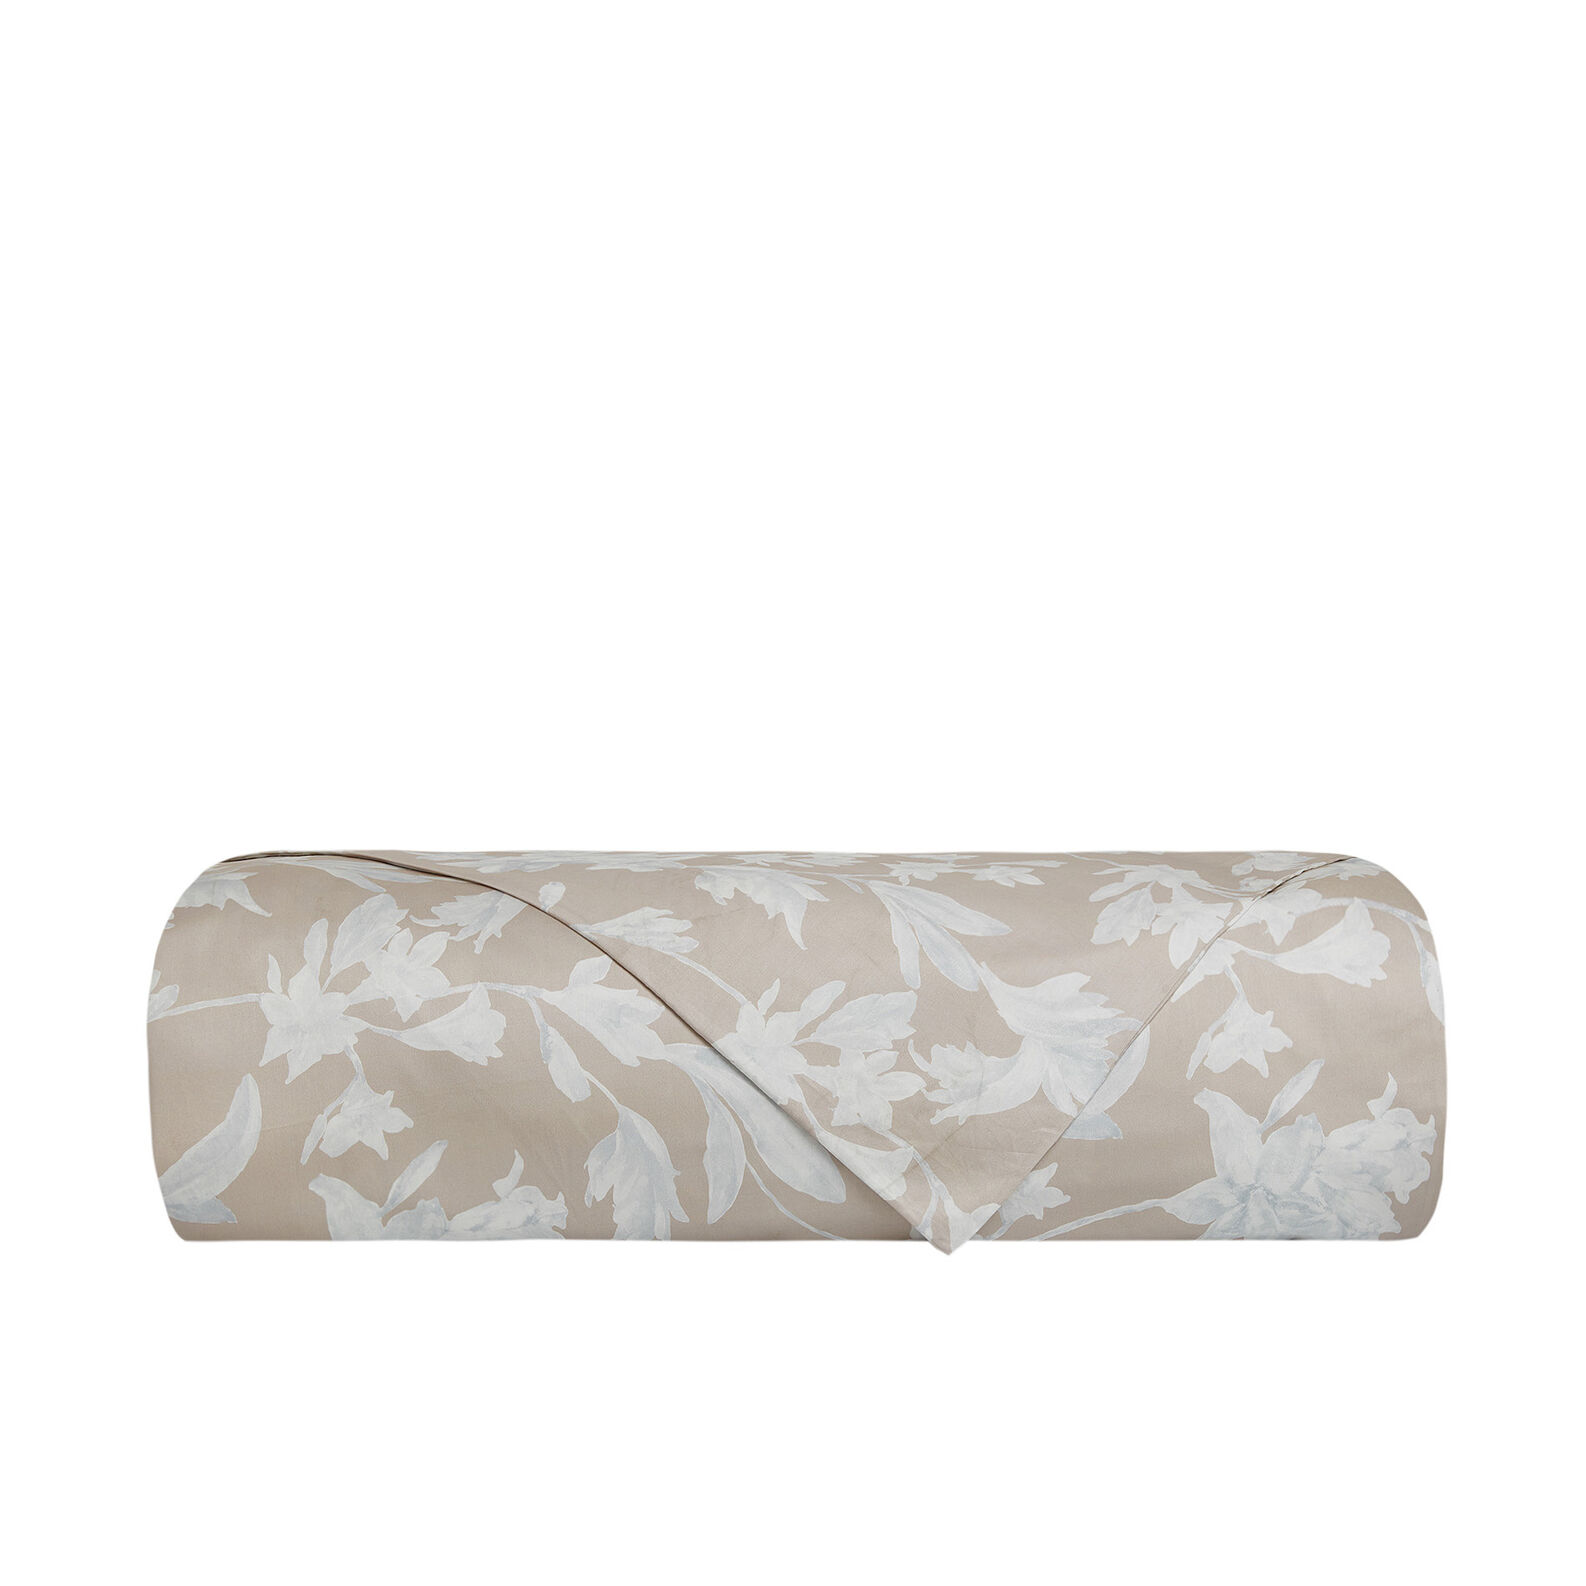 Portofino floral pattern cotton satin duvet cove